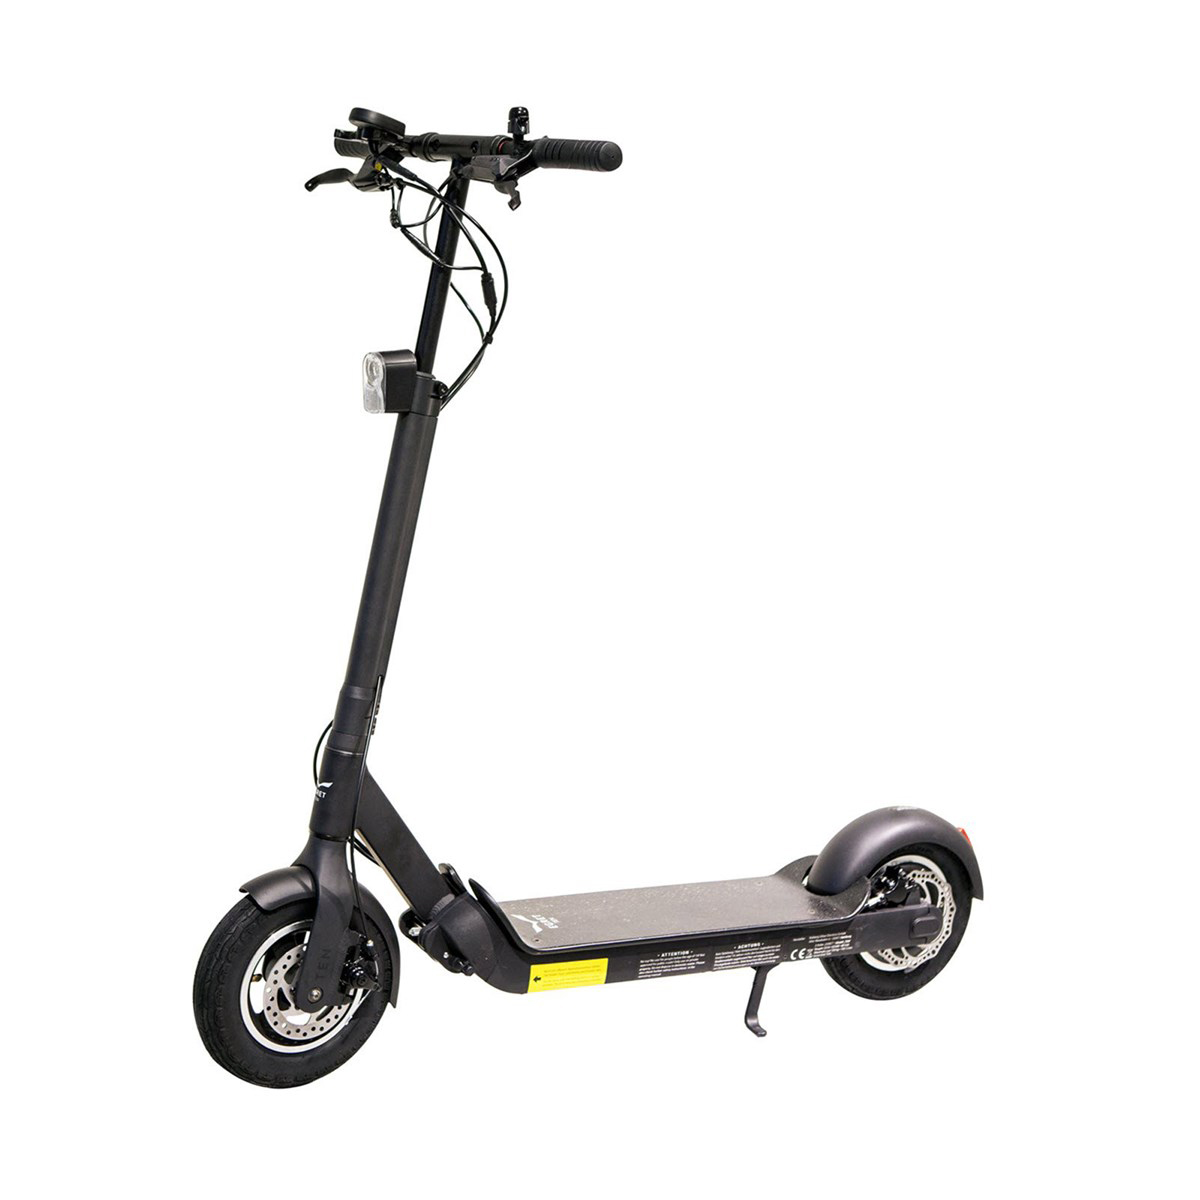 Egret Ten V3 X 36V E-Scooter